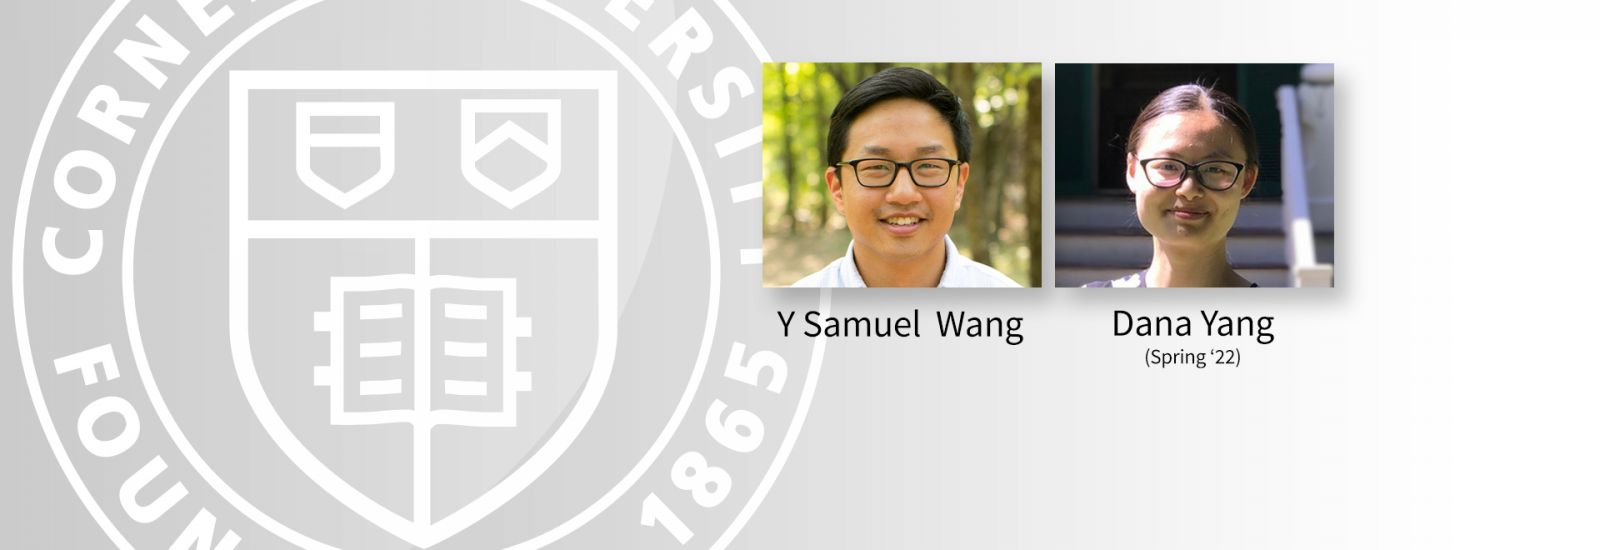 Cornell Statistics and Data Science welcomes Y Samuel Wang and Dana Yang